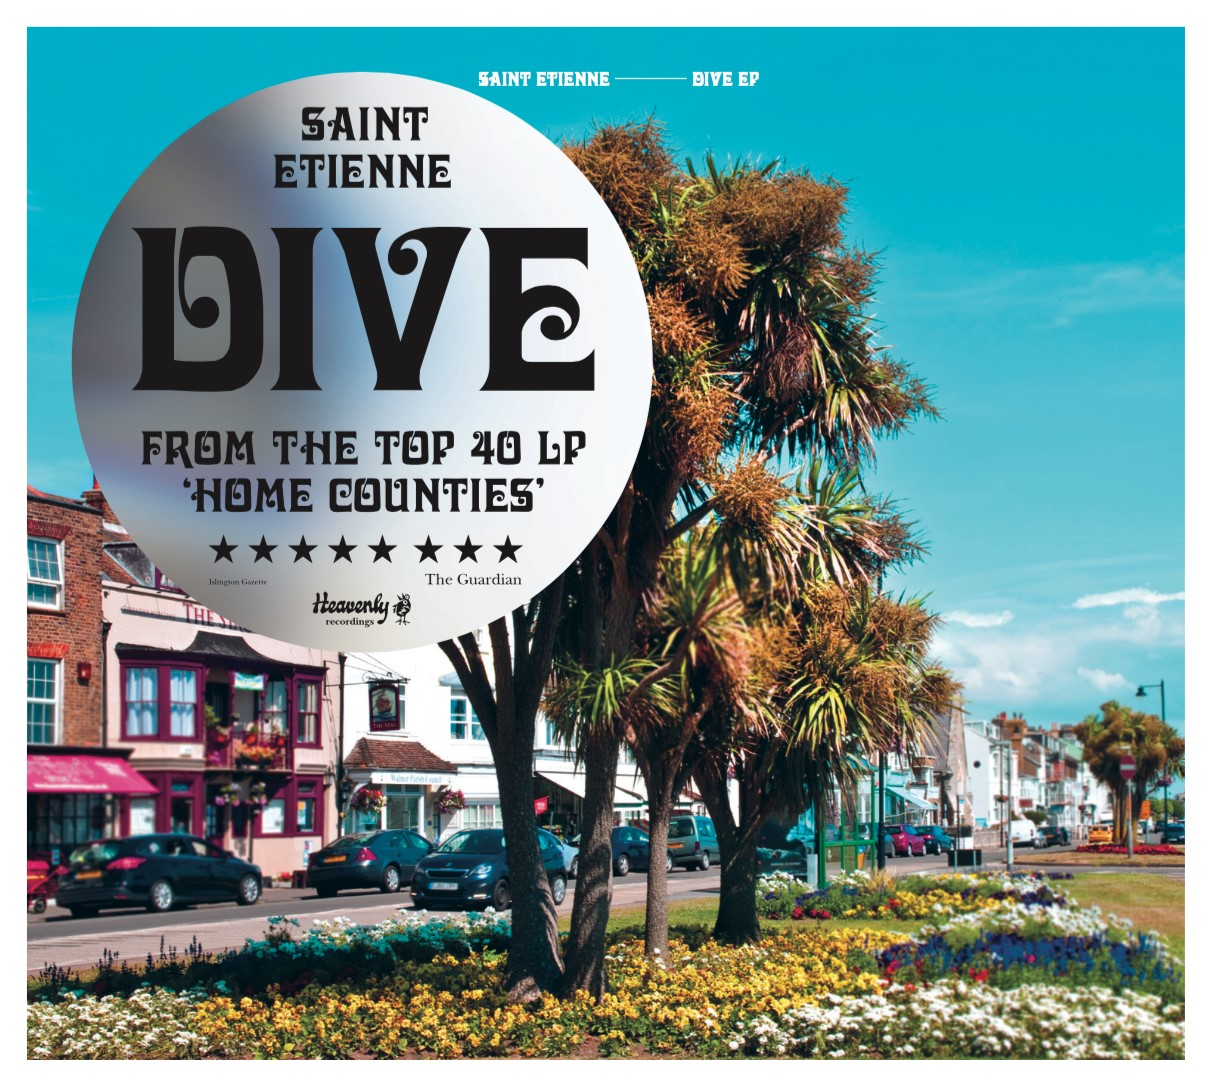 saint etienne dive ep Saint Etienne announce new Dive EP, share remix of title track: Stream